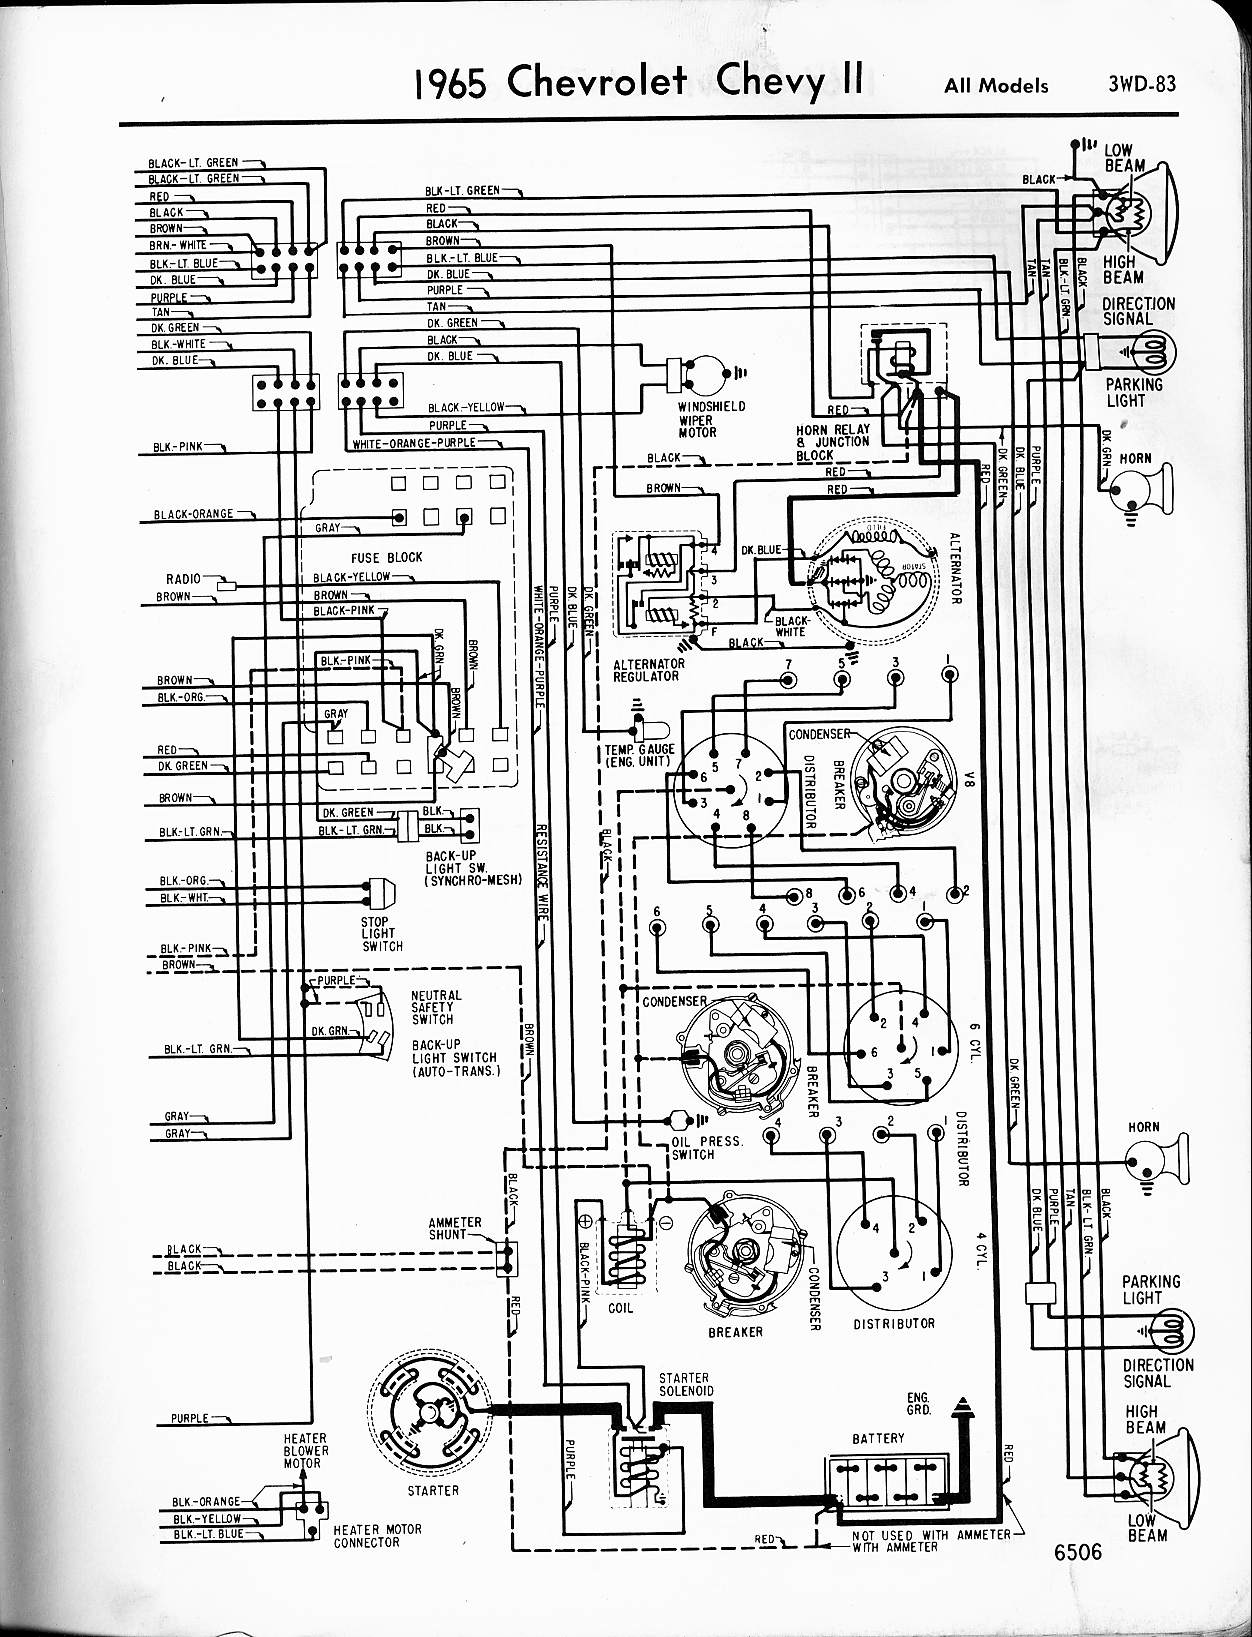 MWireChev65_3WD 083 chevy diagrams 1969 mustang alternator wiring diagram at eliteediting.co